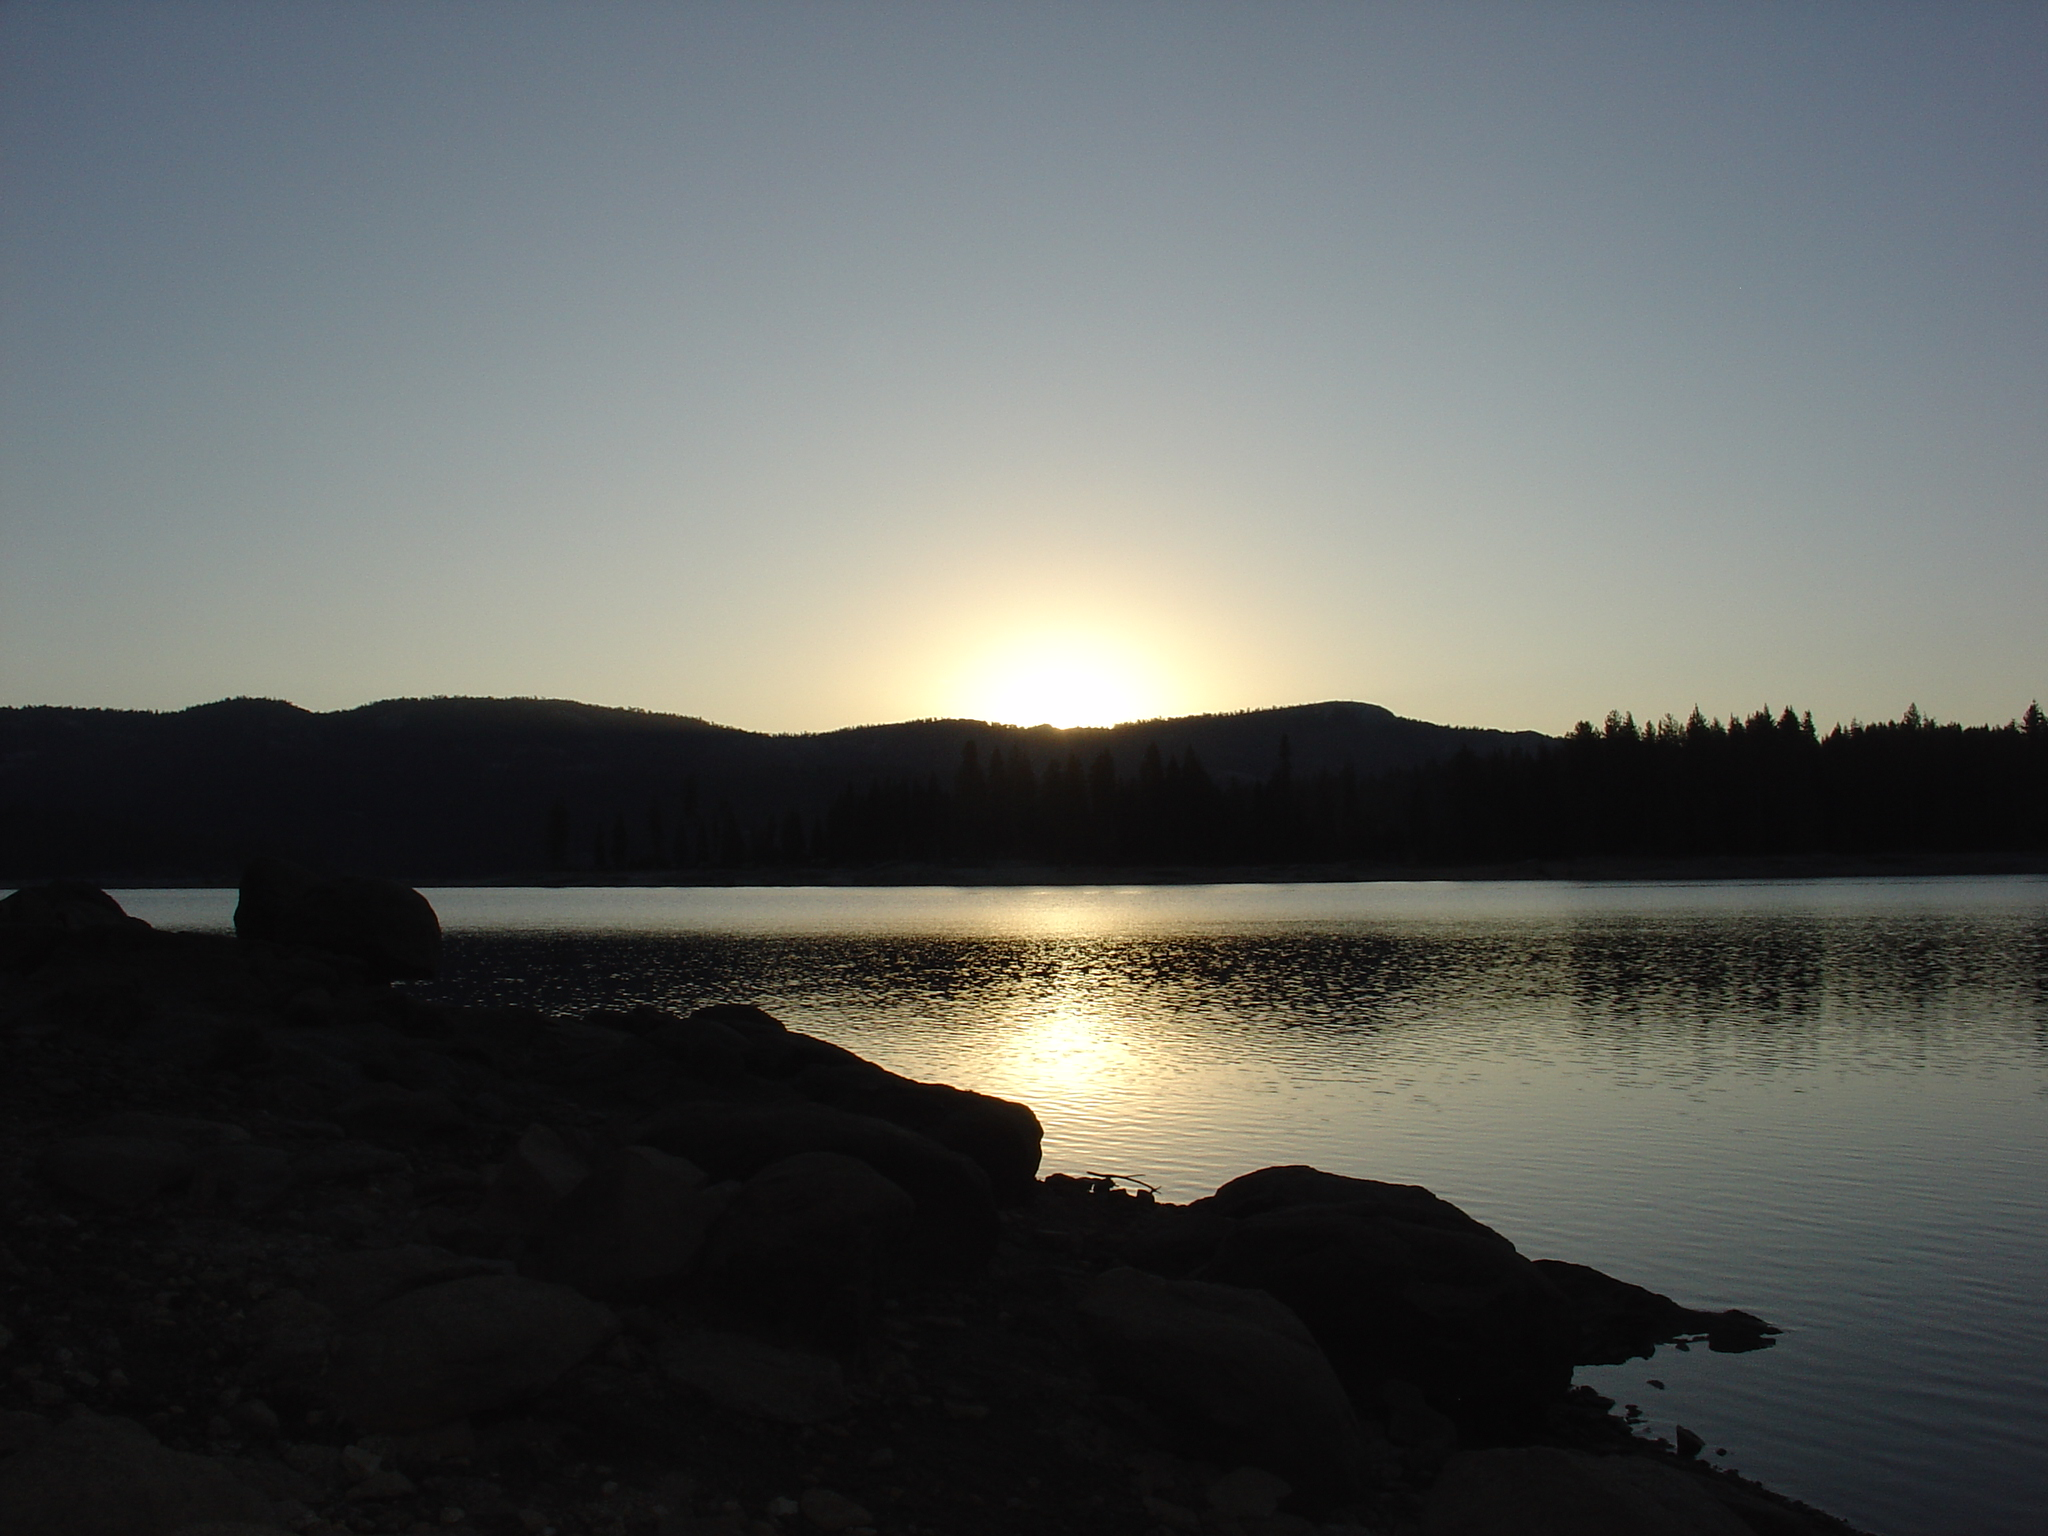 Sunrise over Shaver Lake, September 2009